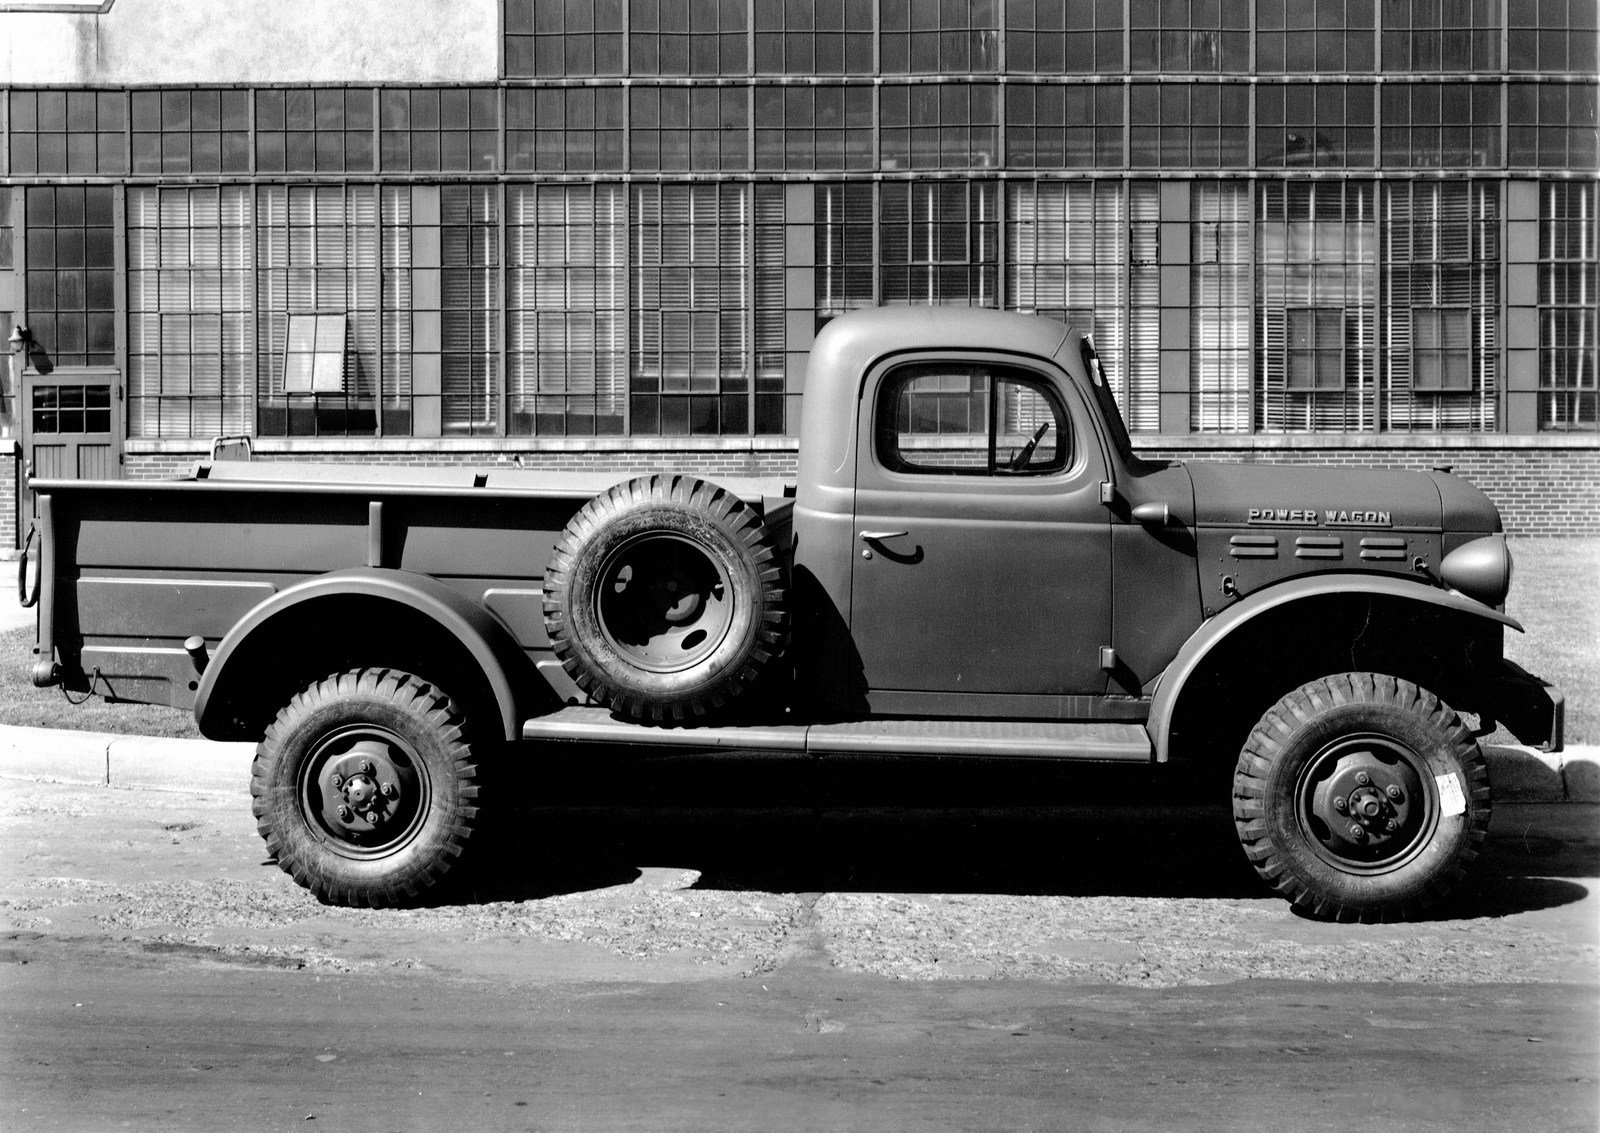 1946 Dodge Power Wagon - Picture 639461 | truck review ...